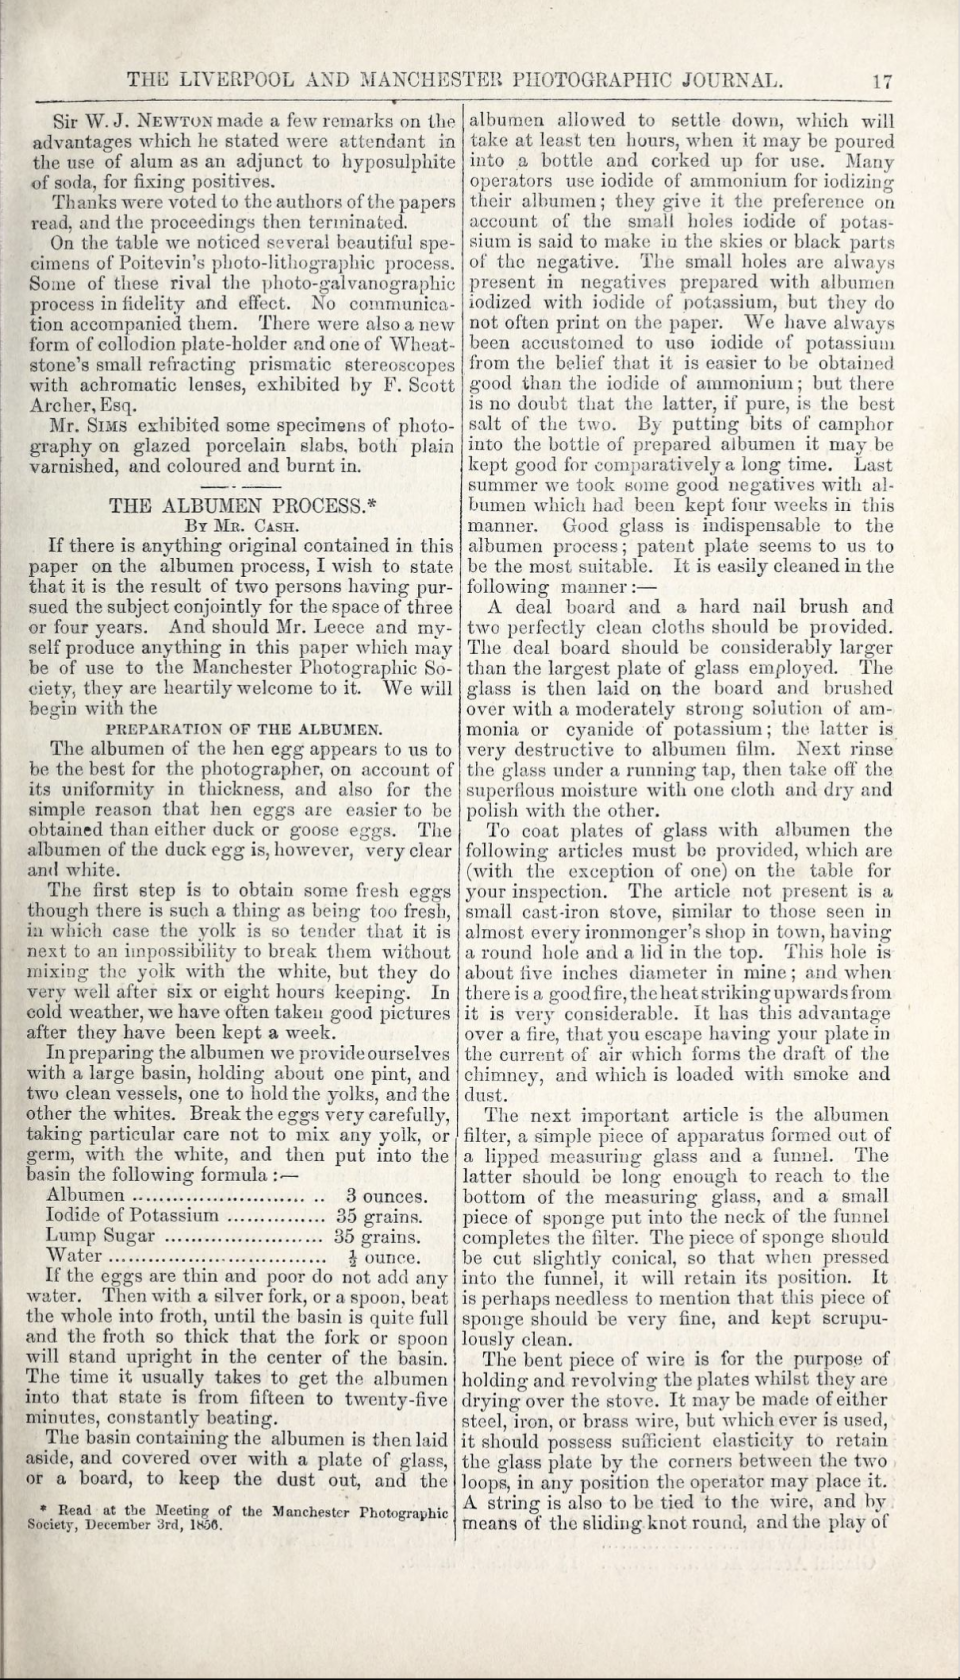 'The Albumen Process,' from The Liverpool and Manchester Photographic Journal, Vol. 1, 1857, page 17